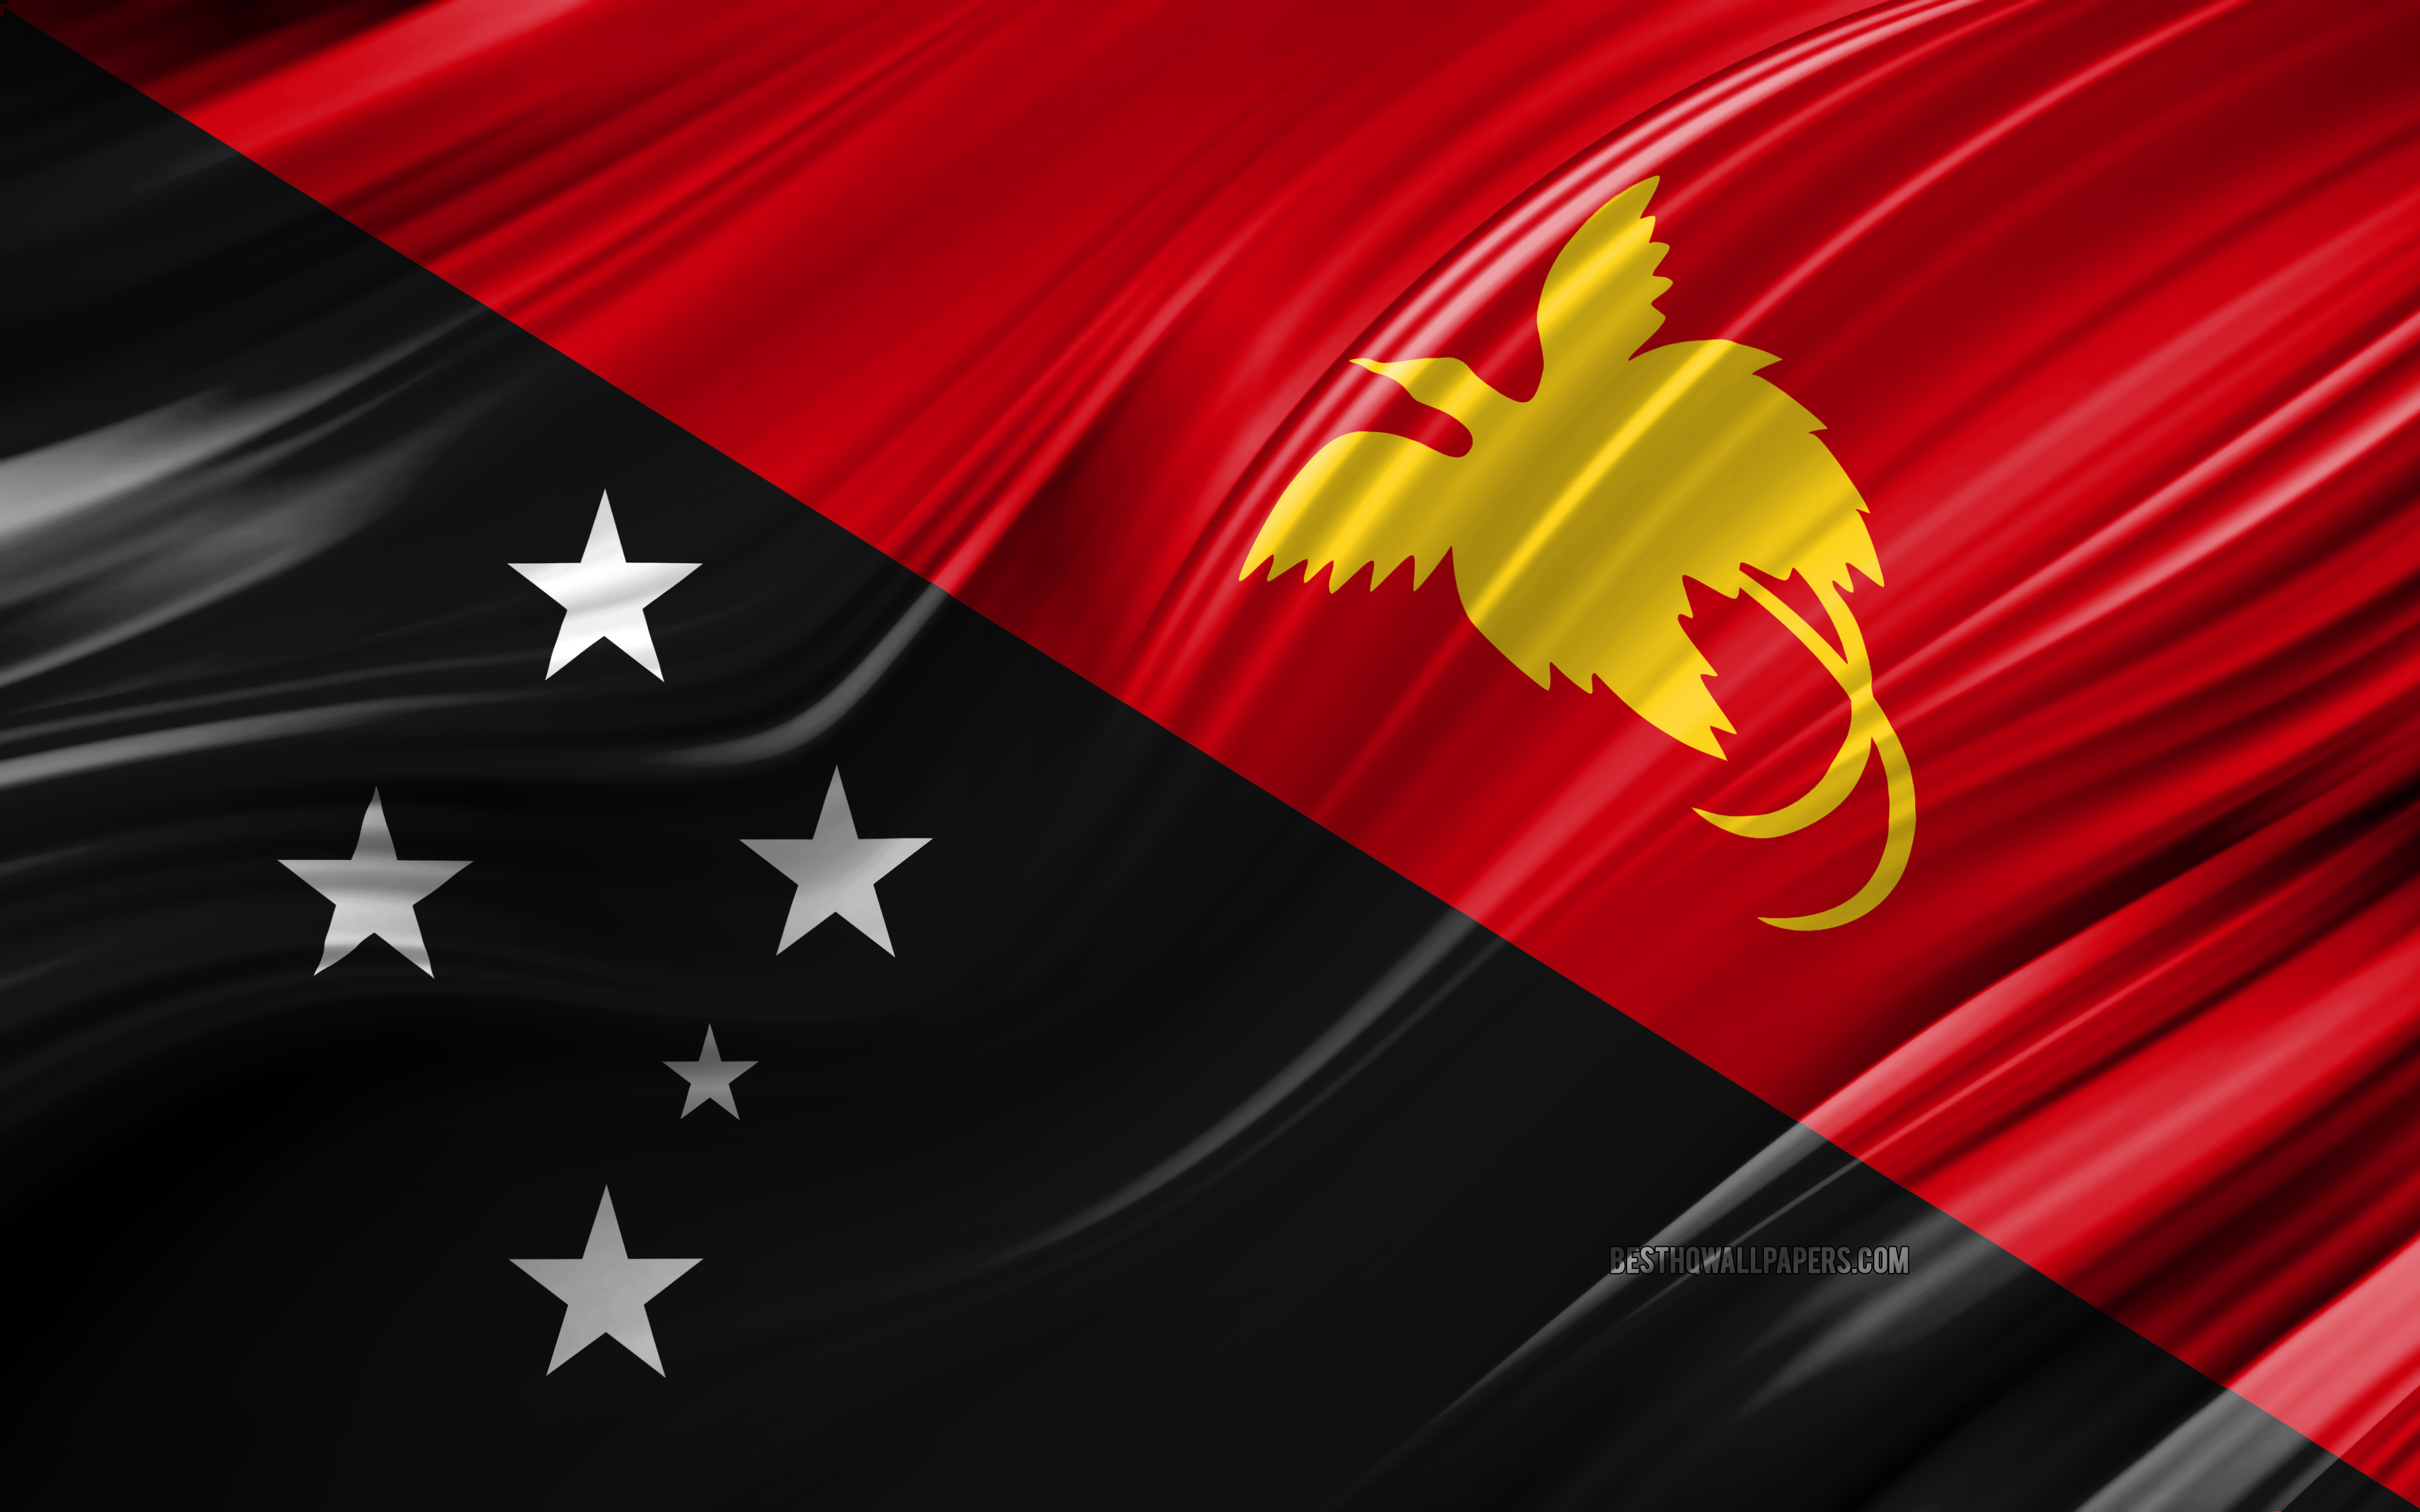 Download wallpapers 4k Papua New Guinea flag Oceanian countries 3840x2400